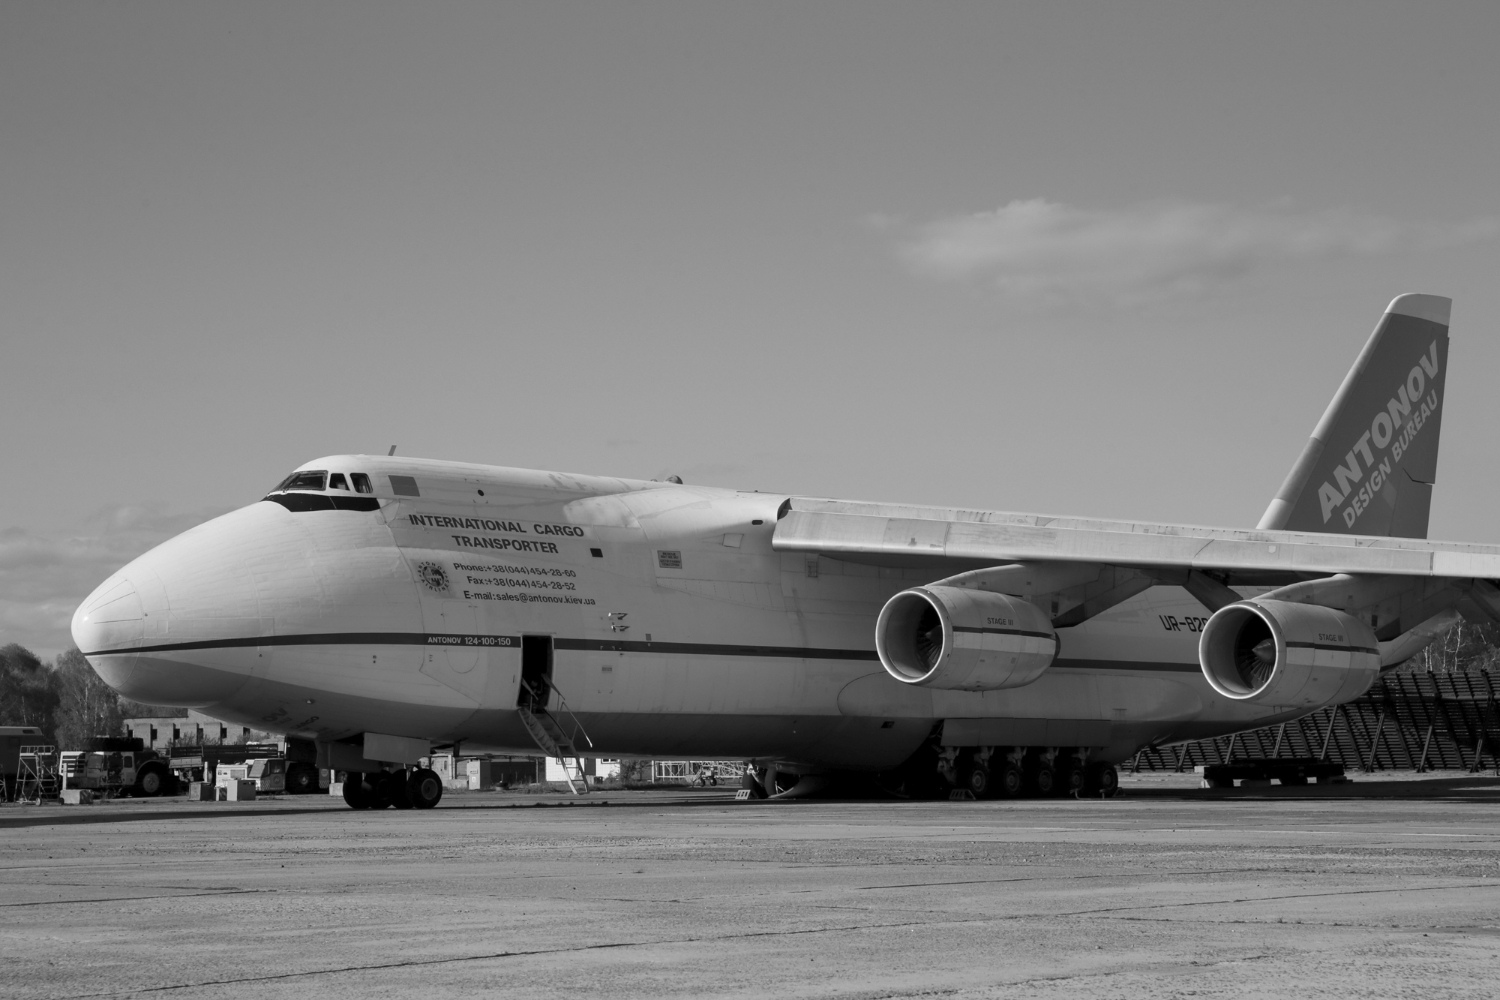 The Russian An-124 cargo planes represent a strategic issue for the French army.